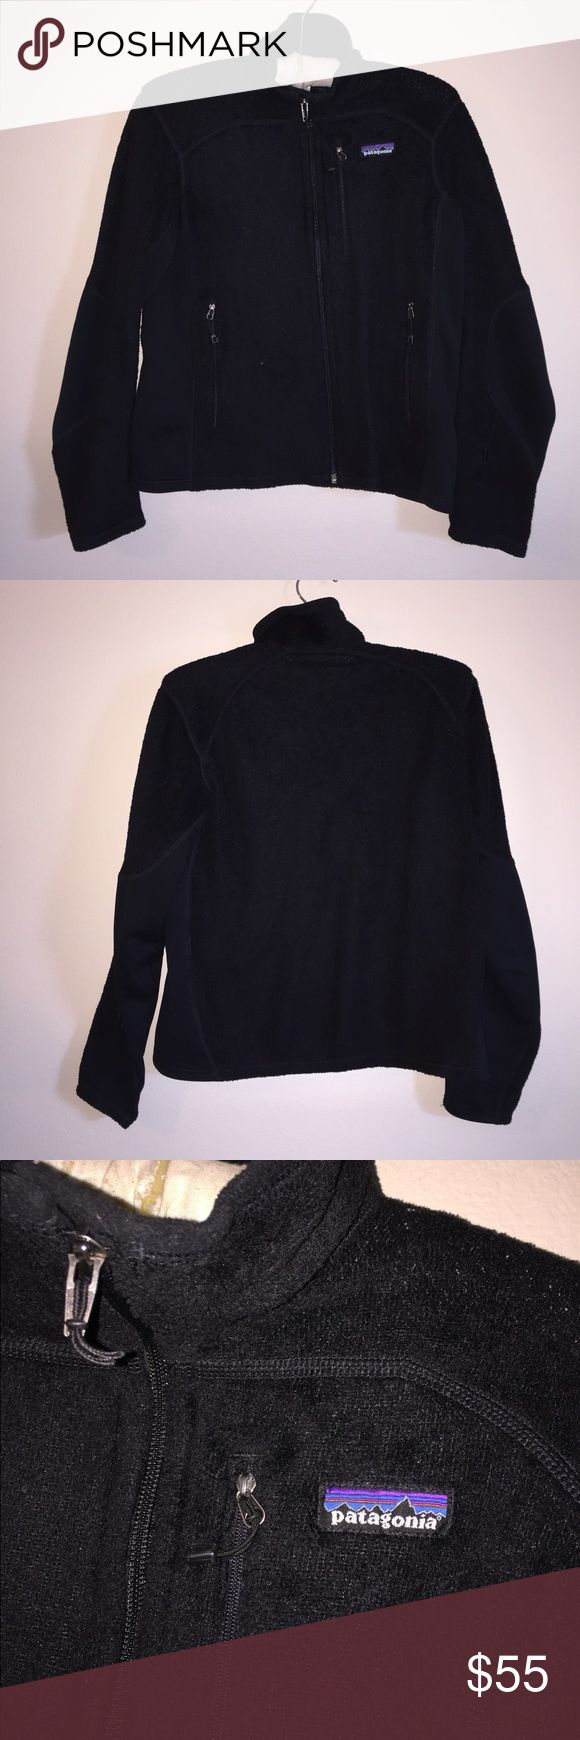 Patagonia Polar Tec Fleece Zip Up Size S, good condition. Shows faint signs of wear. Color is black.  Feel free to ask any questions! No trades sorry, & offers thru the offer button only!x... Patagonia Jackets & Coats